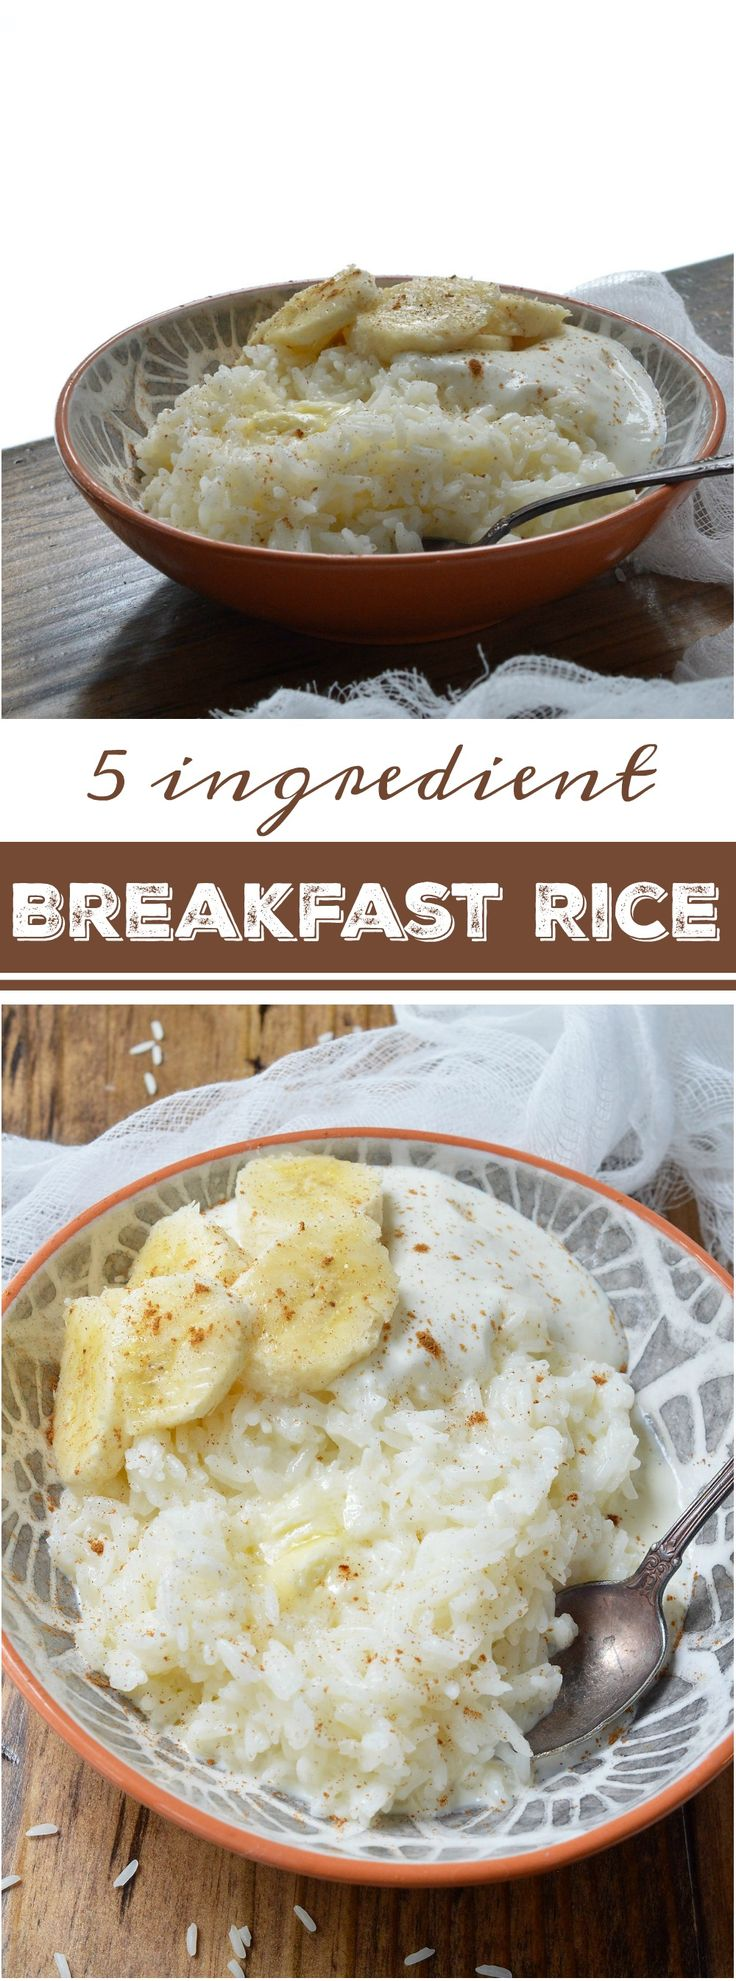 This 5 Ingredient Breakfast Rice Recipe is a dish from my childhood. Not only is it quick and easy but a 3rd grader can make it. . . I did. Sweet white rice swimming in milk and butter with a sprinkle of cinnamon. Top this comforting breakfast bowl with you favorite fruit, nuts or yogurt. ad